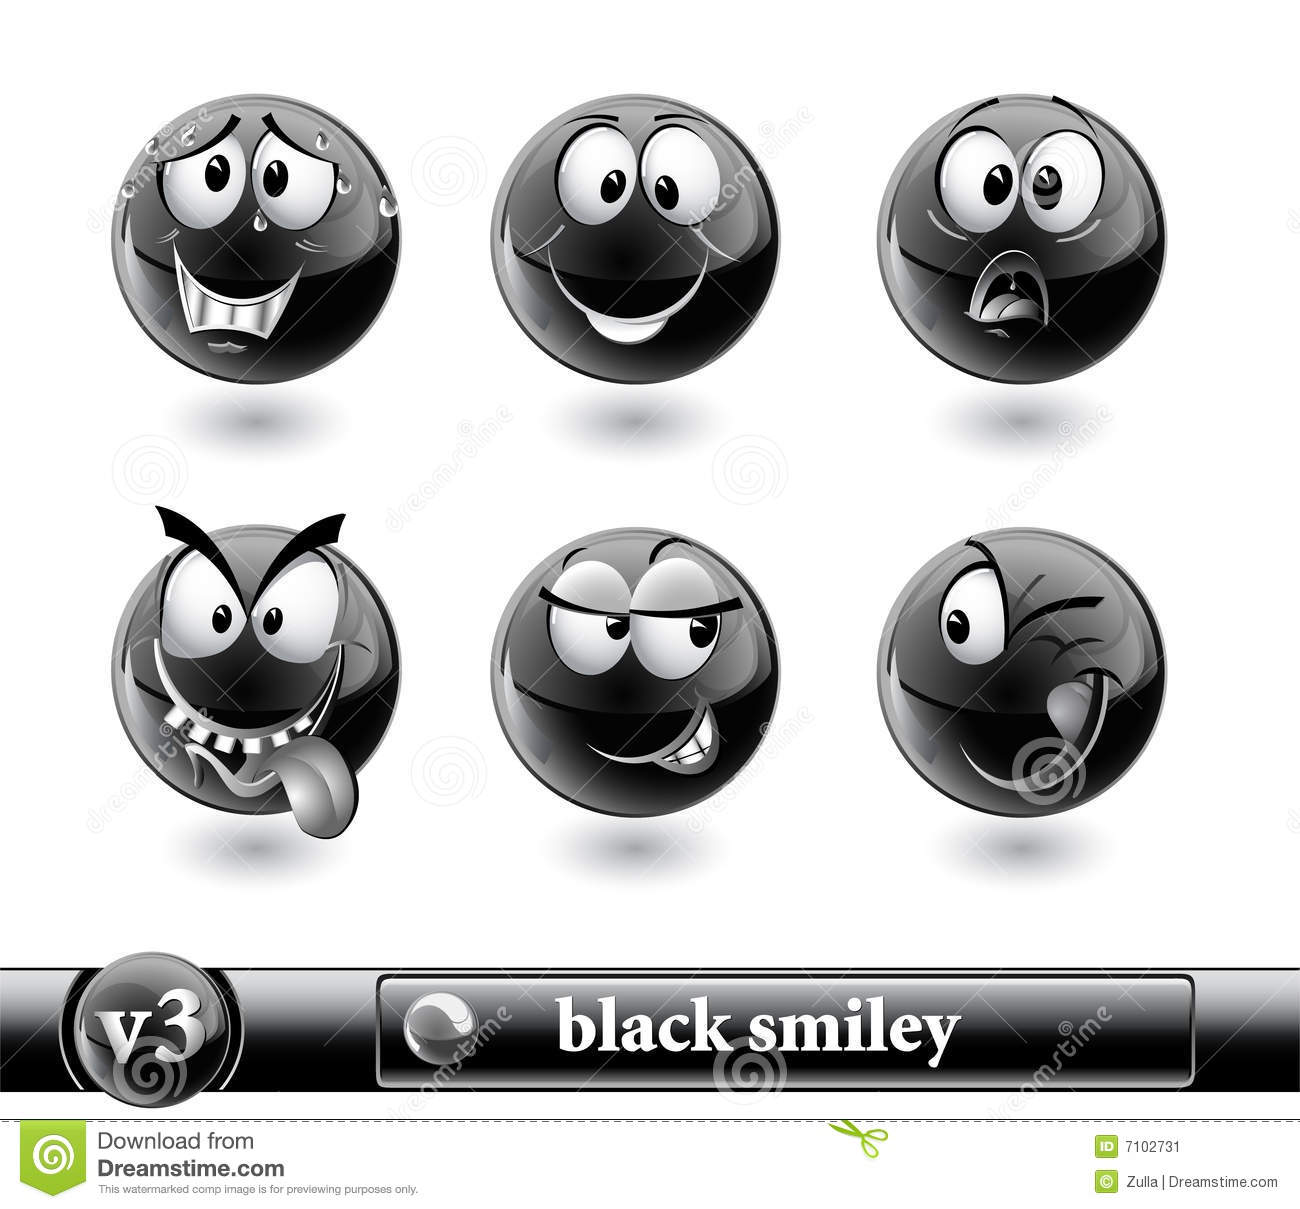 Smiley noir vol3 image stock image 7102731 - Smiley noir et blanc ...